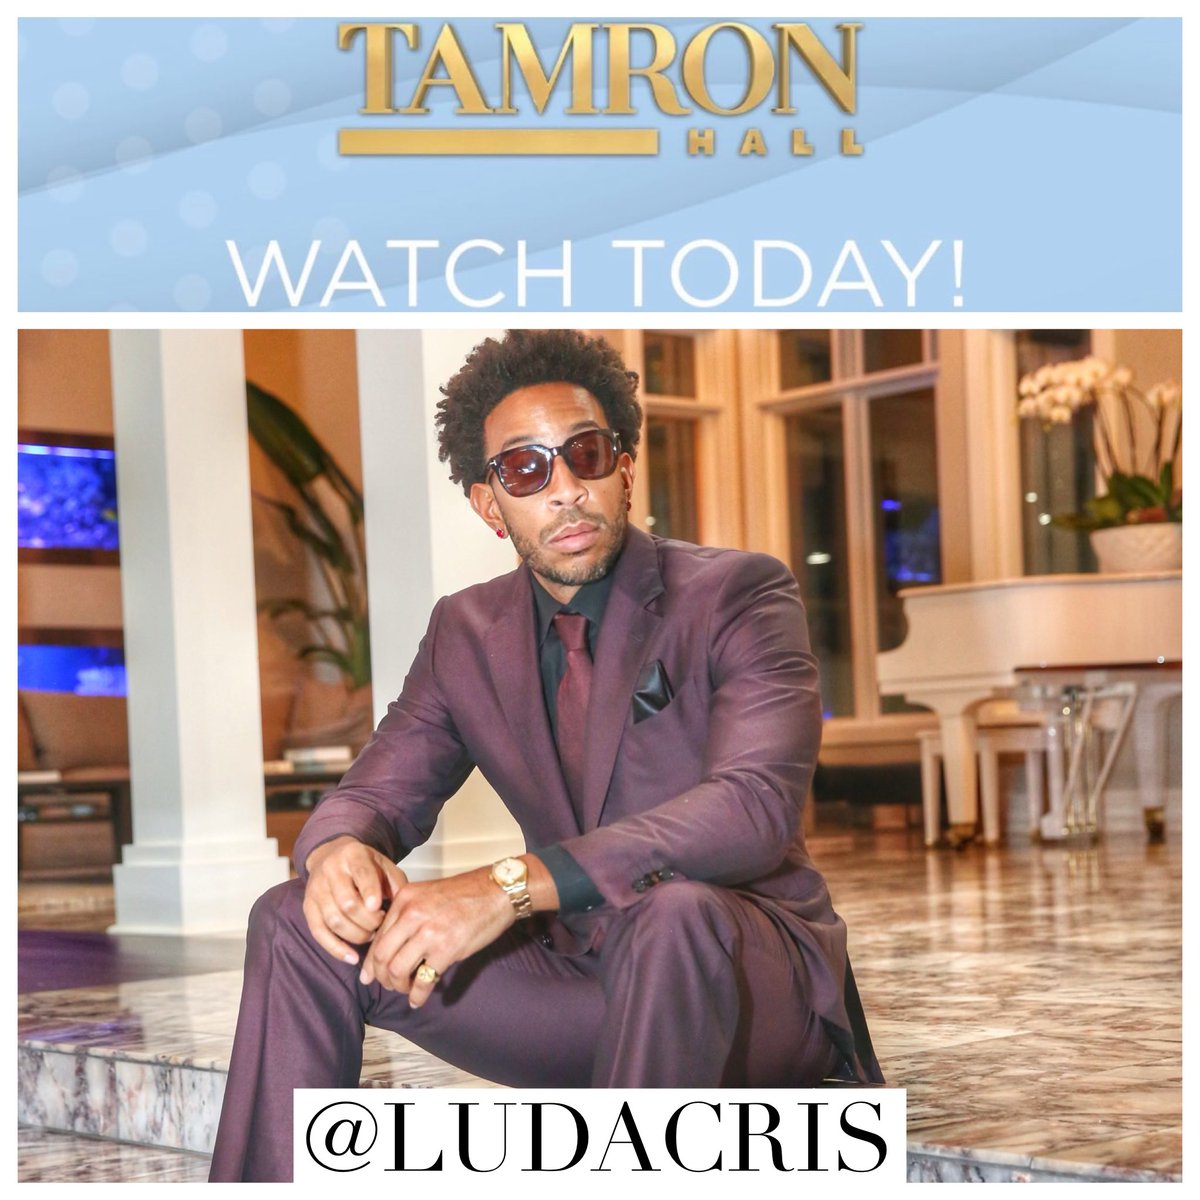 TODAY at 3 p.m. EST tune into The @TamronHallShow! I will be on there talking about #LudaCantCook which streams on 2/25 on @discoveryplus! Also it's my wife's TV debut!